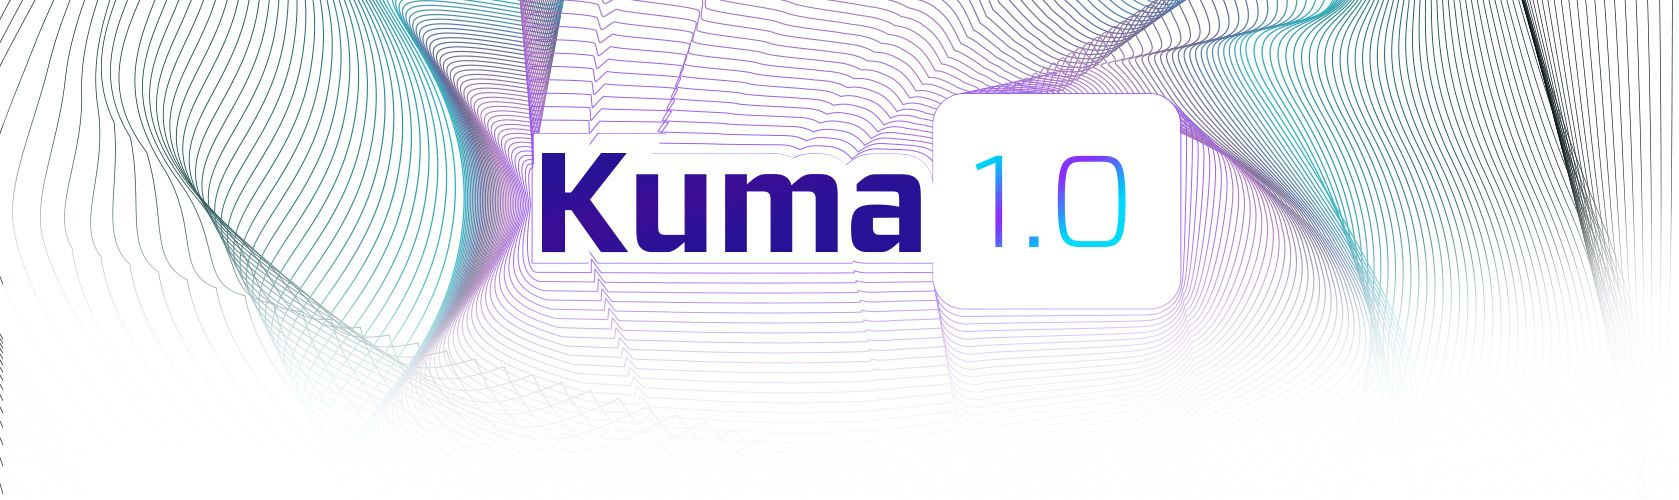 /kuma-10-ga-released-with-70-new-features-and-improvements-avl3wwe feature image